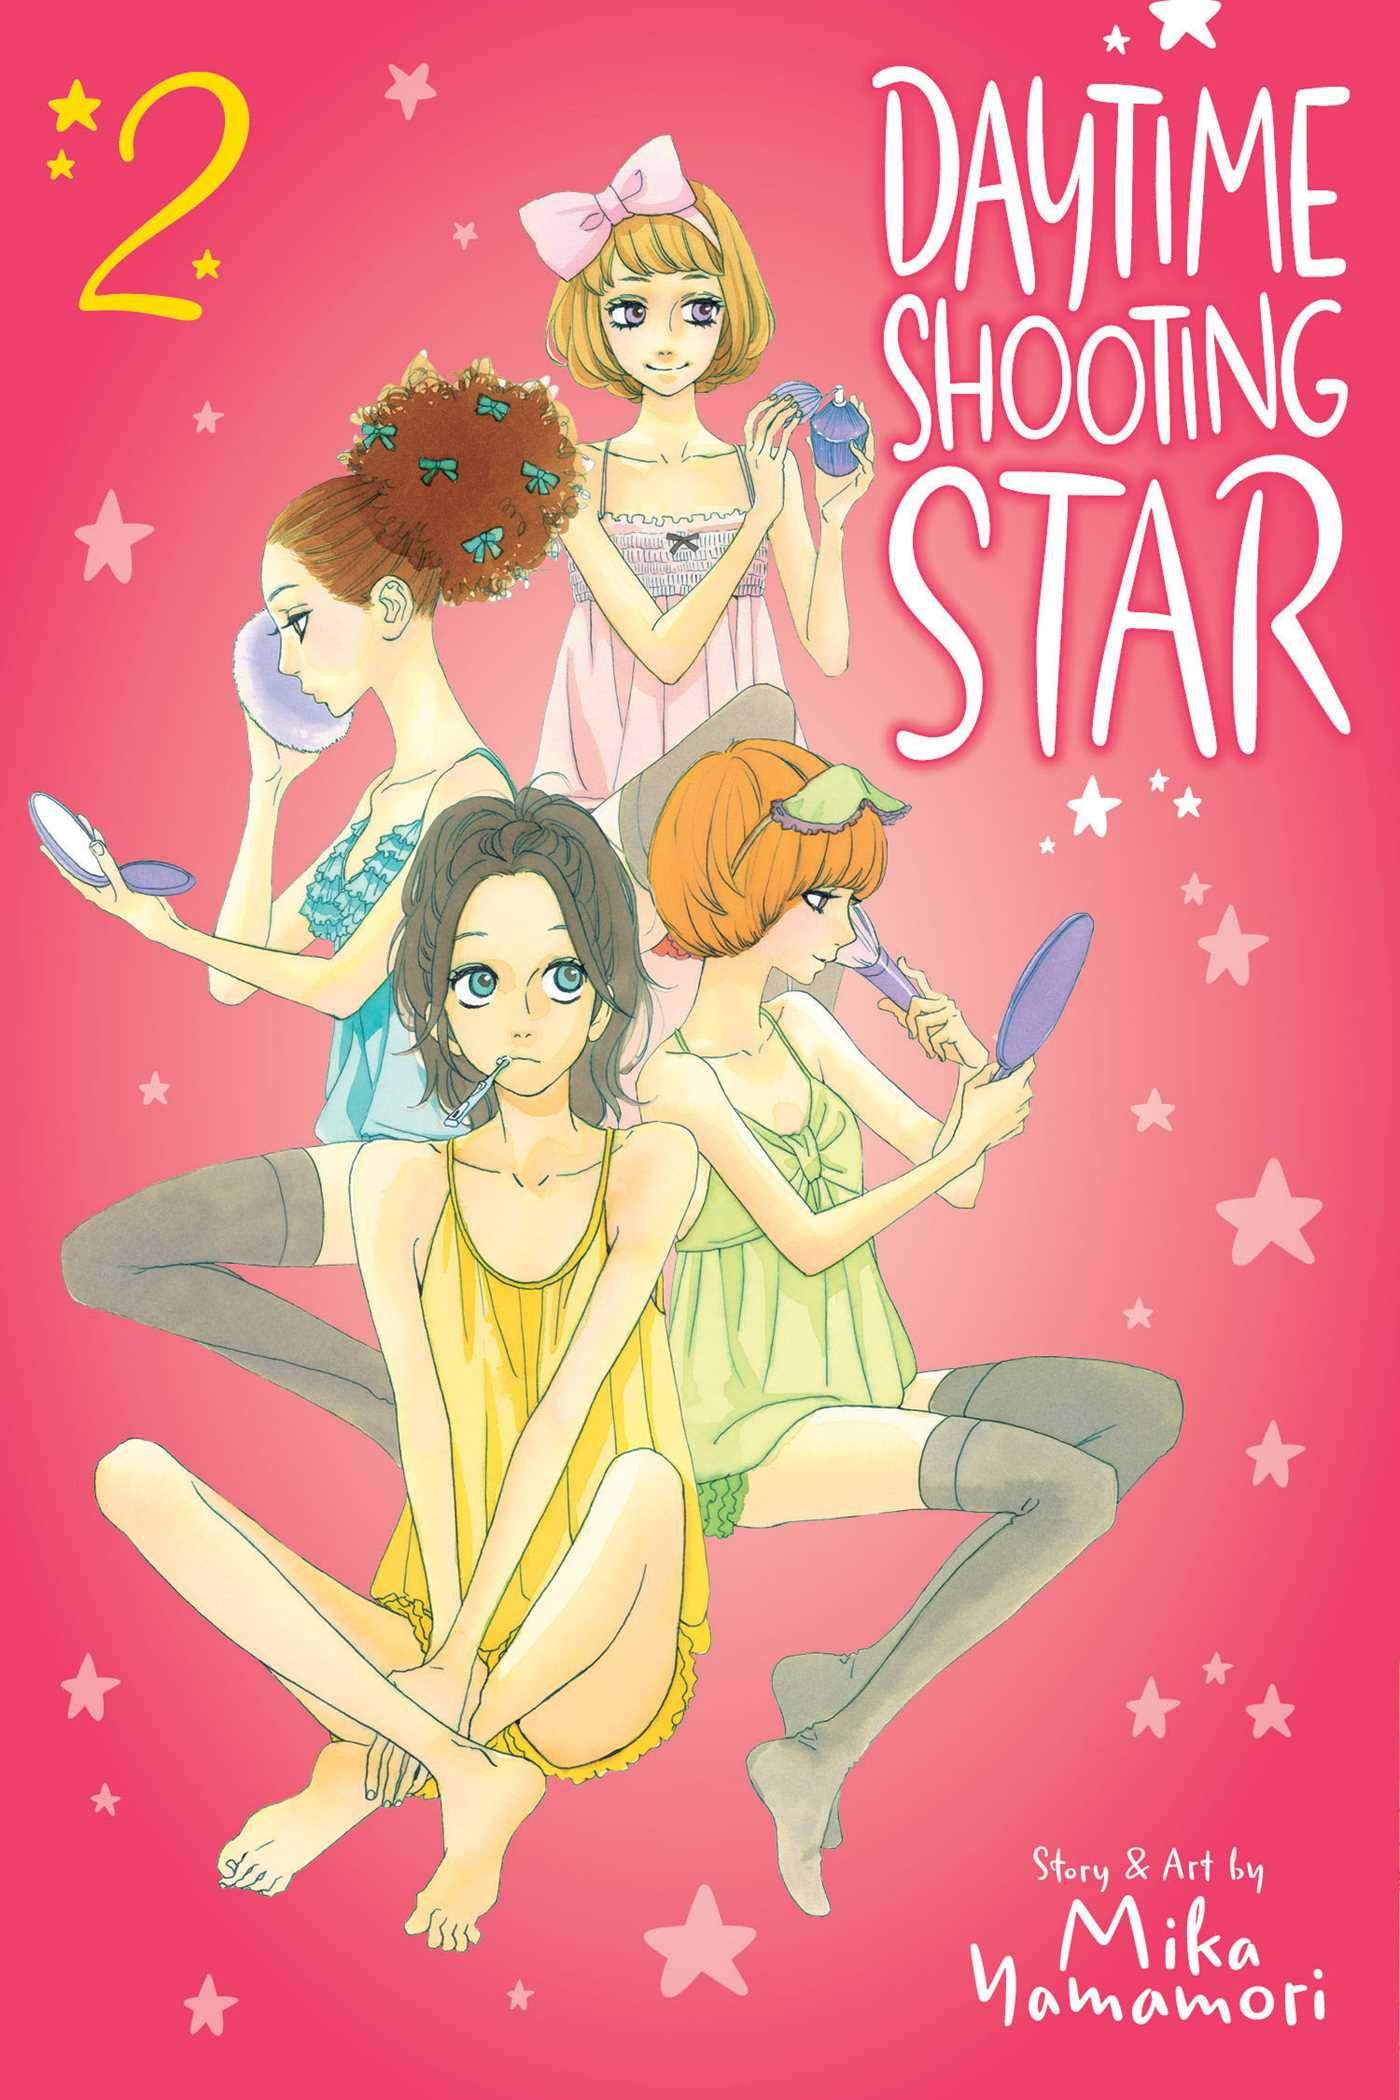 Daytime Shooting Star, Vol. 2 | Book by Mika Yamamori | Official ...